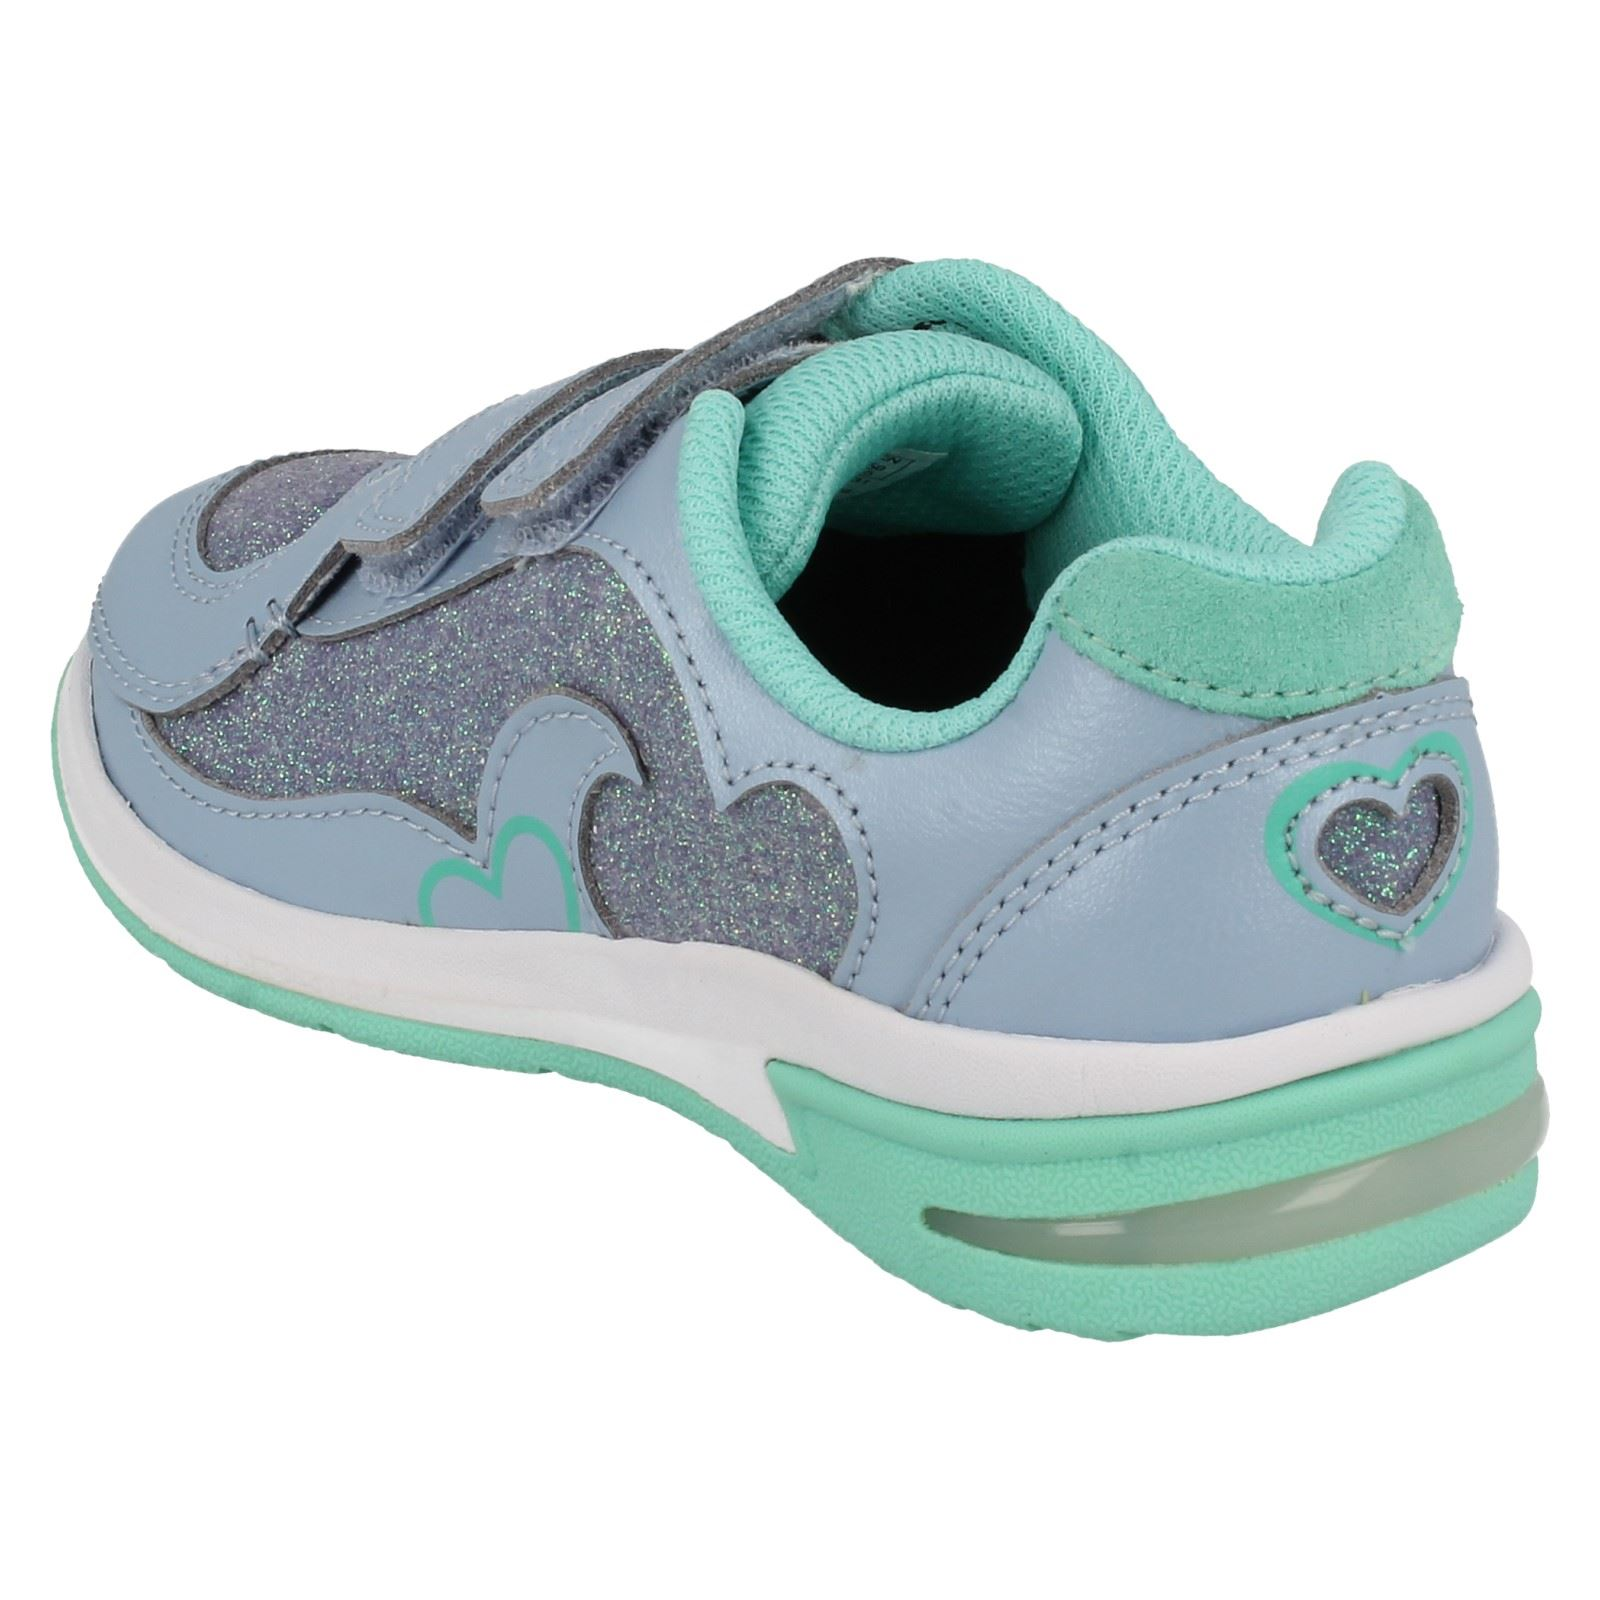 clarks girls trainers